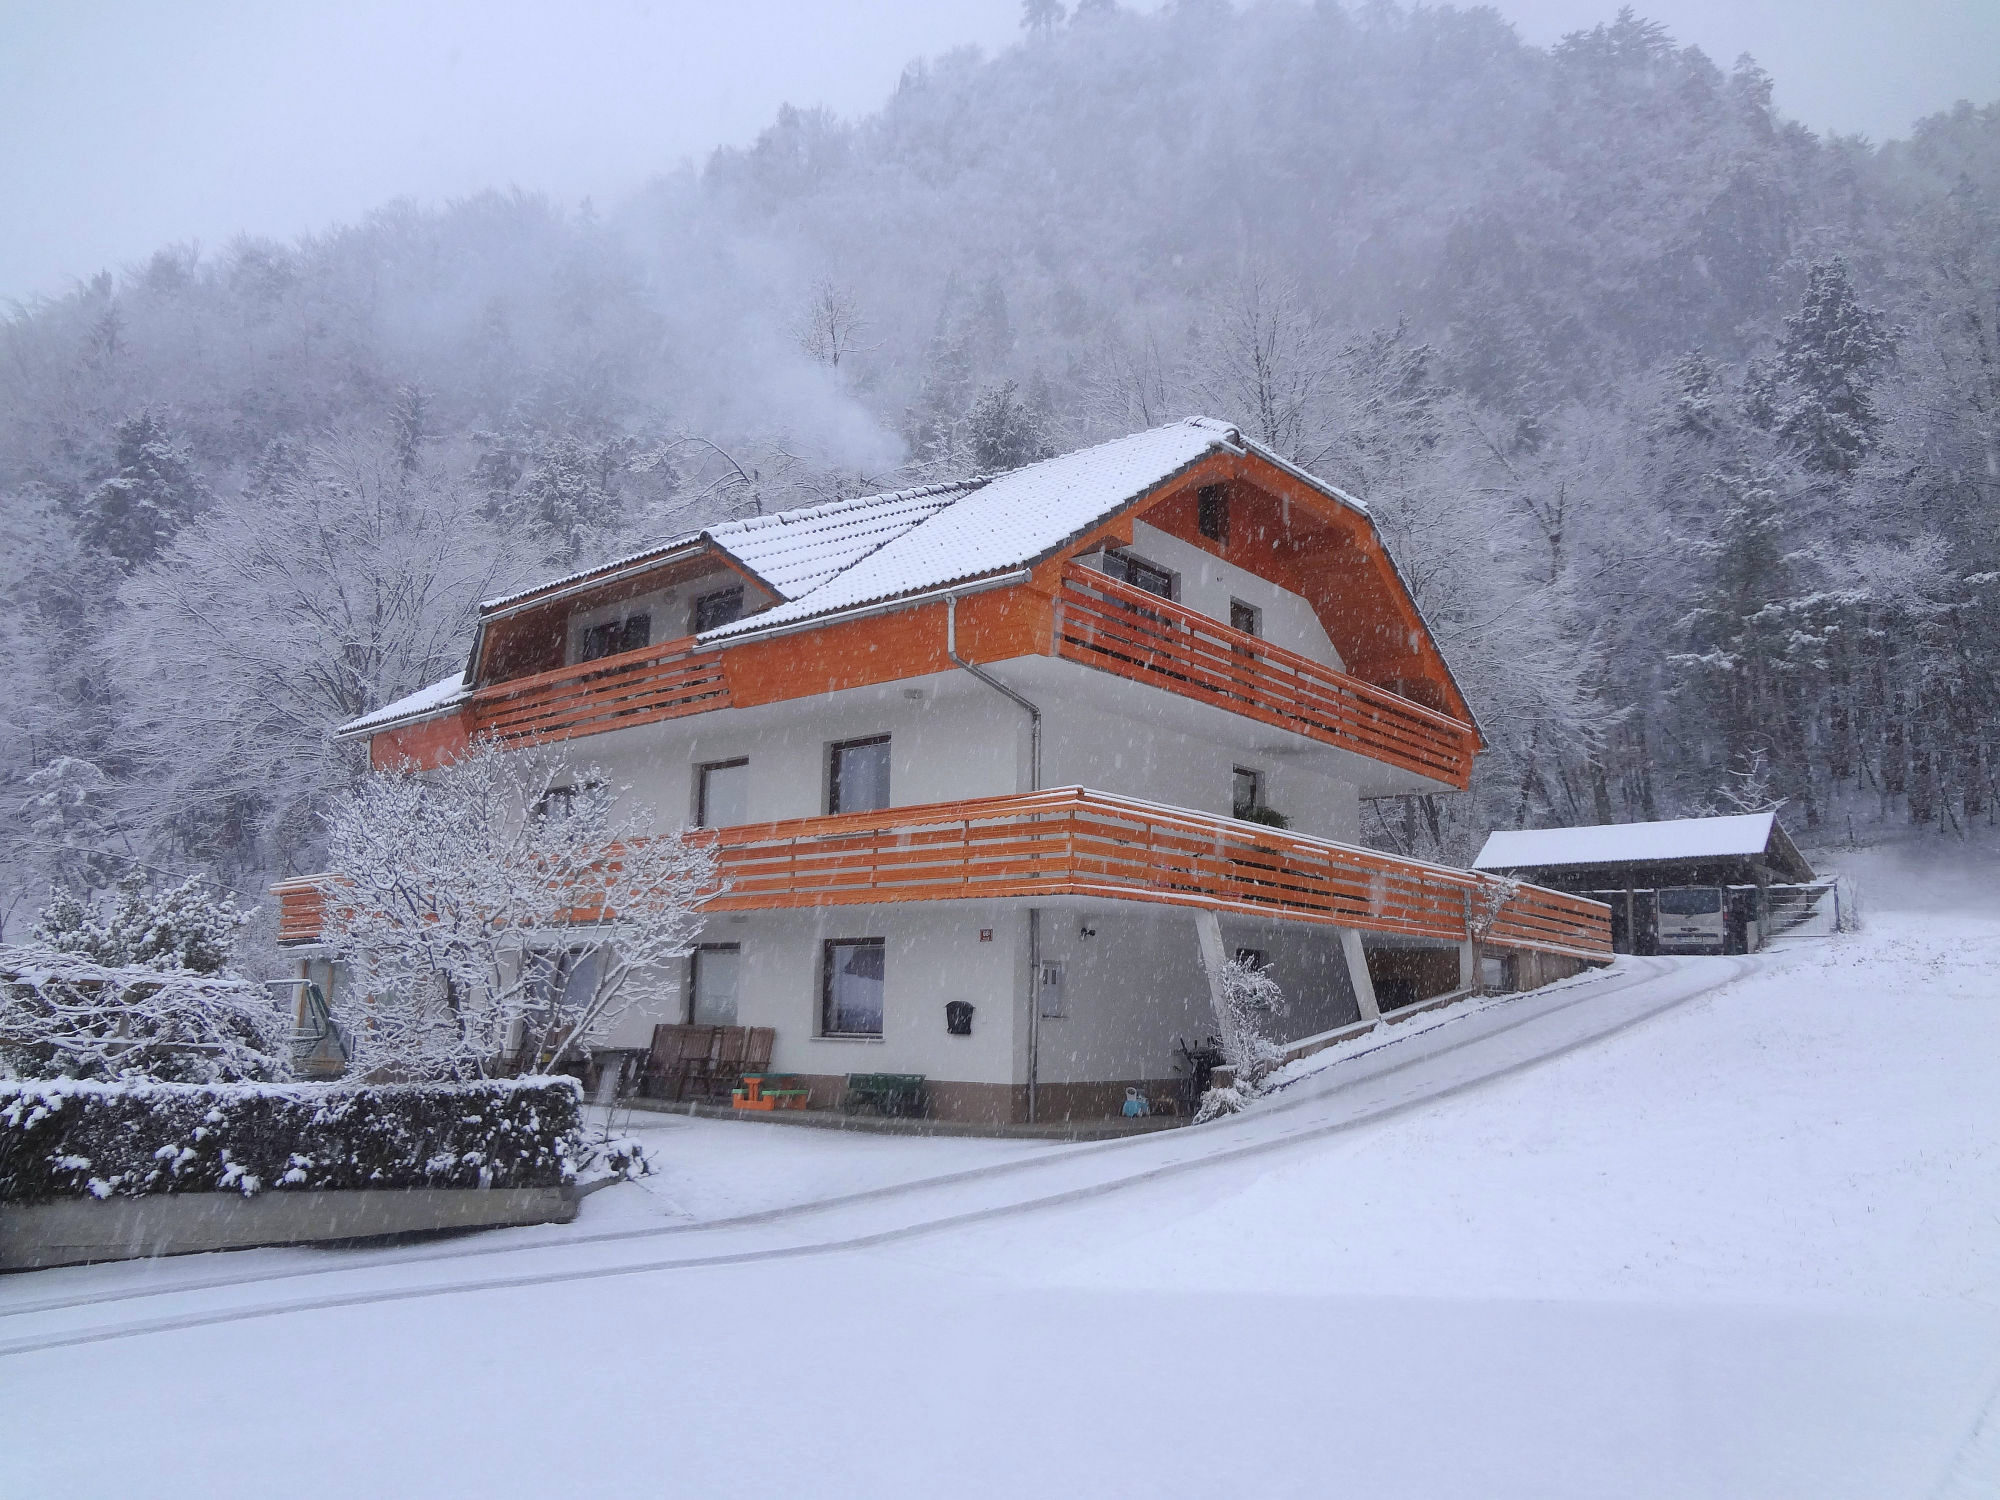 Property No.1 of Apartments Fine Stay in winter during snowing